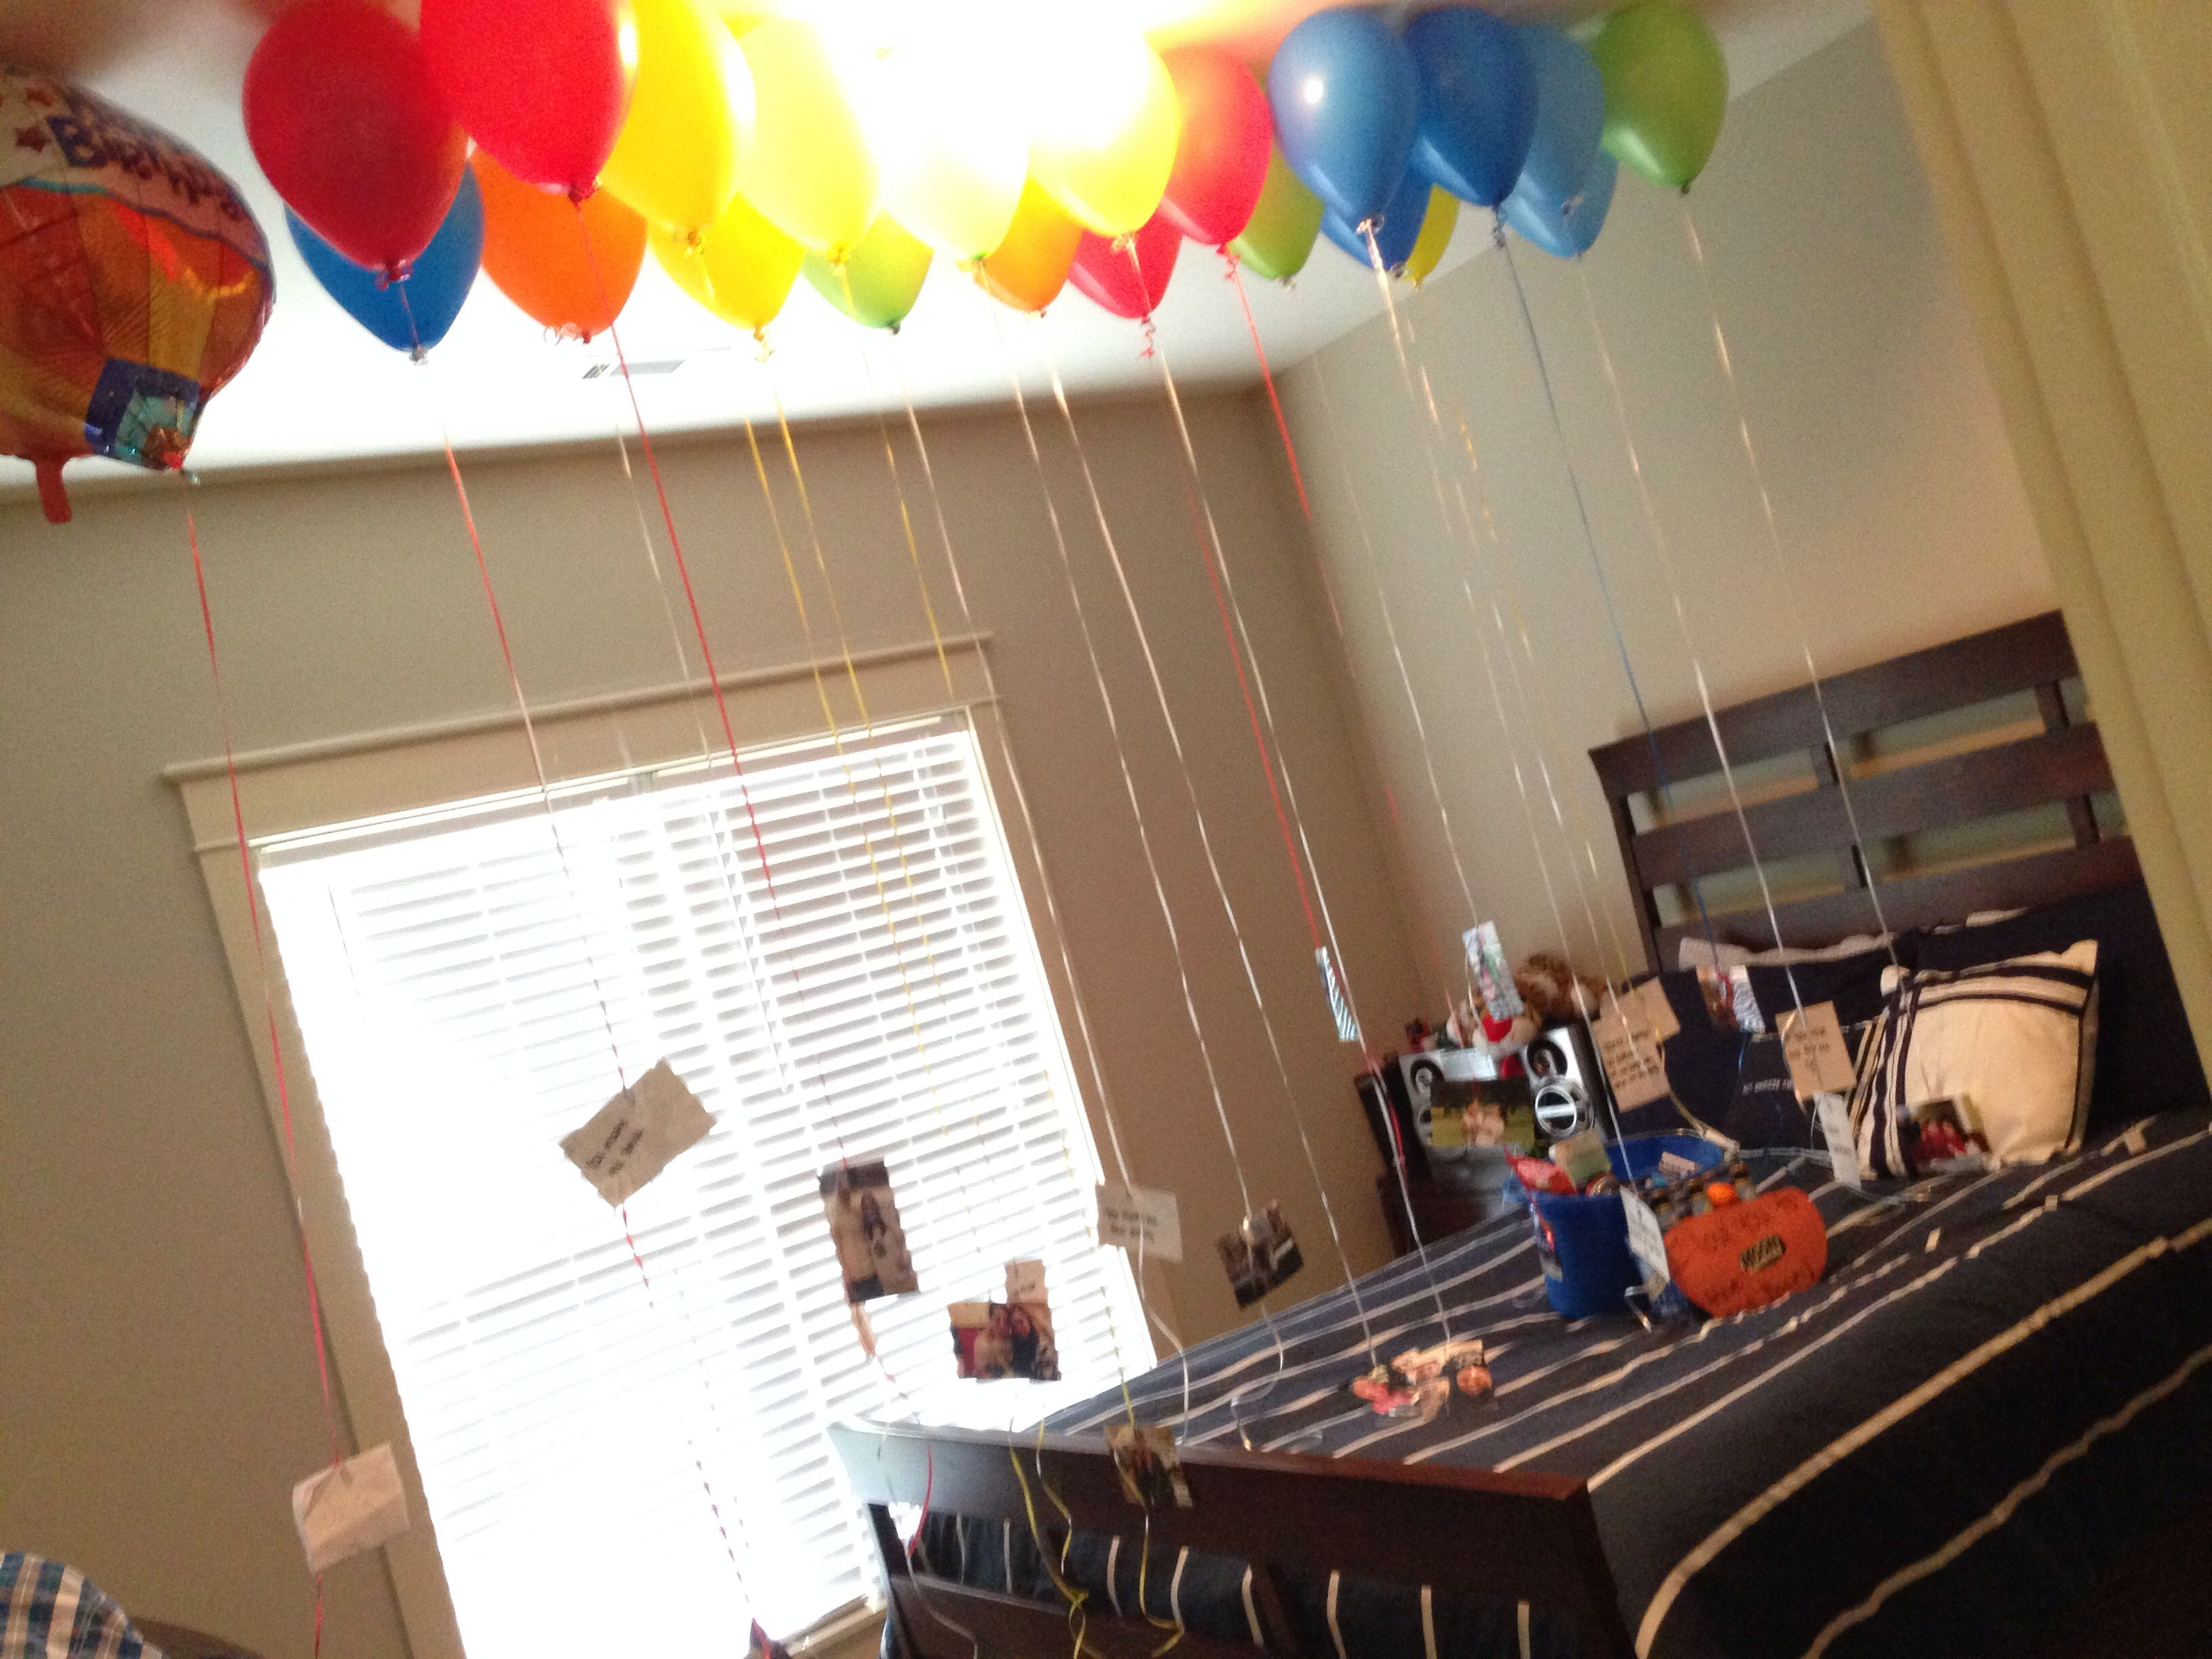 21st birthday idea I blew up 21 balloons and each balloon had a